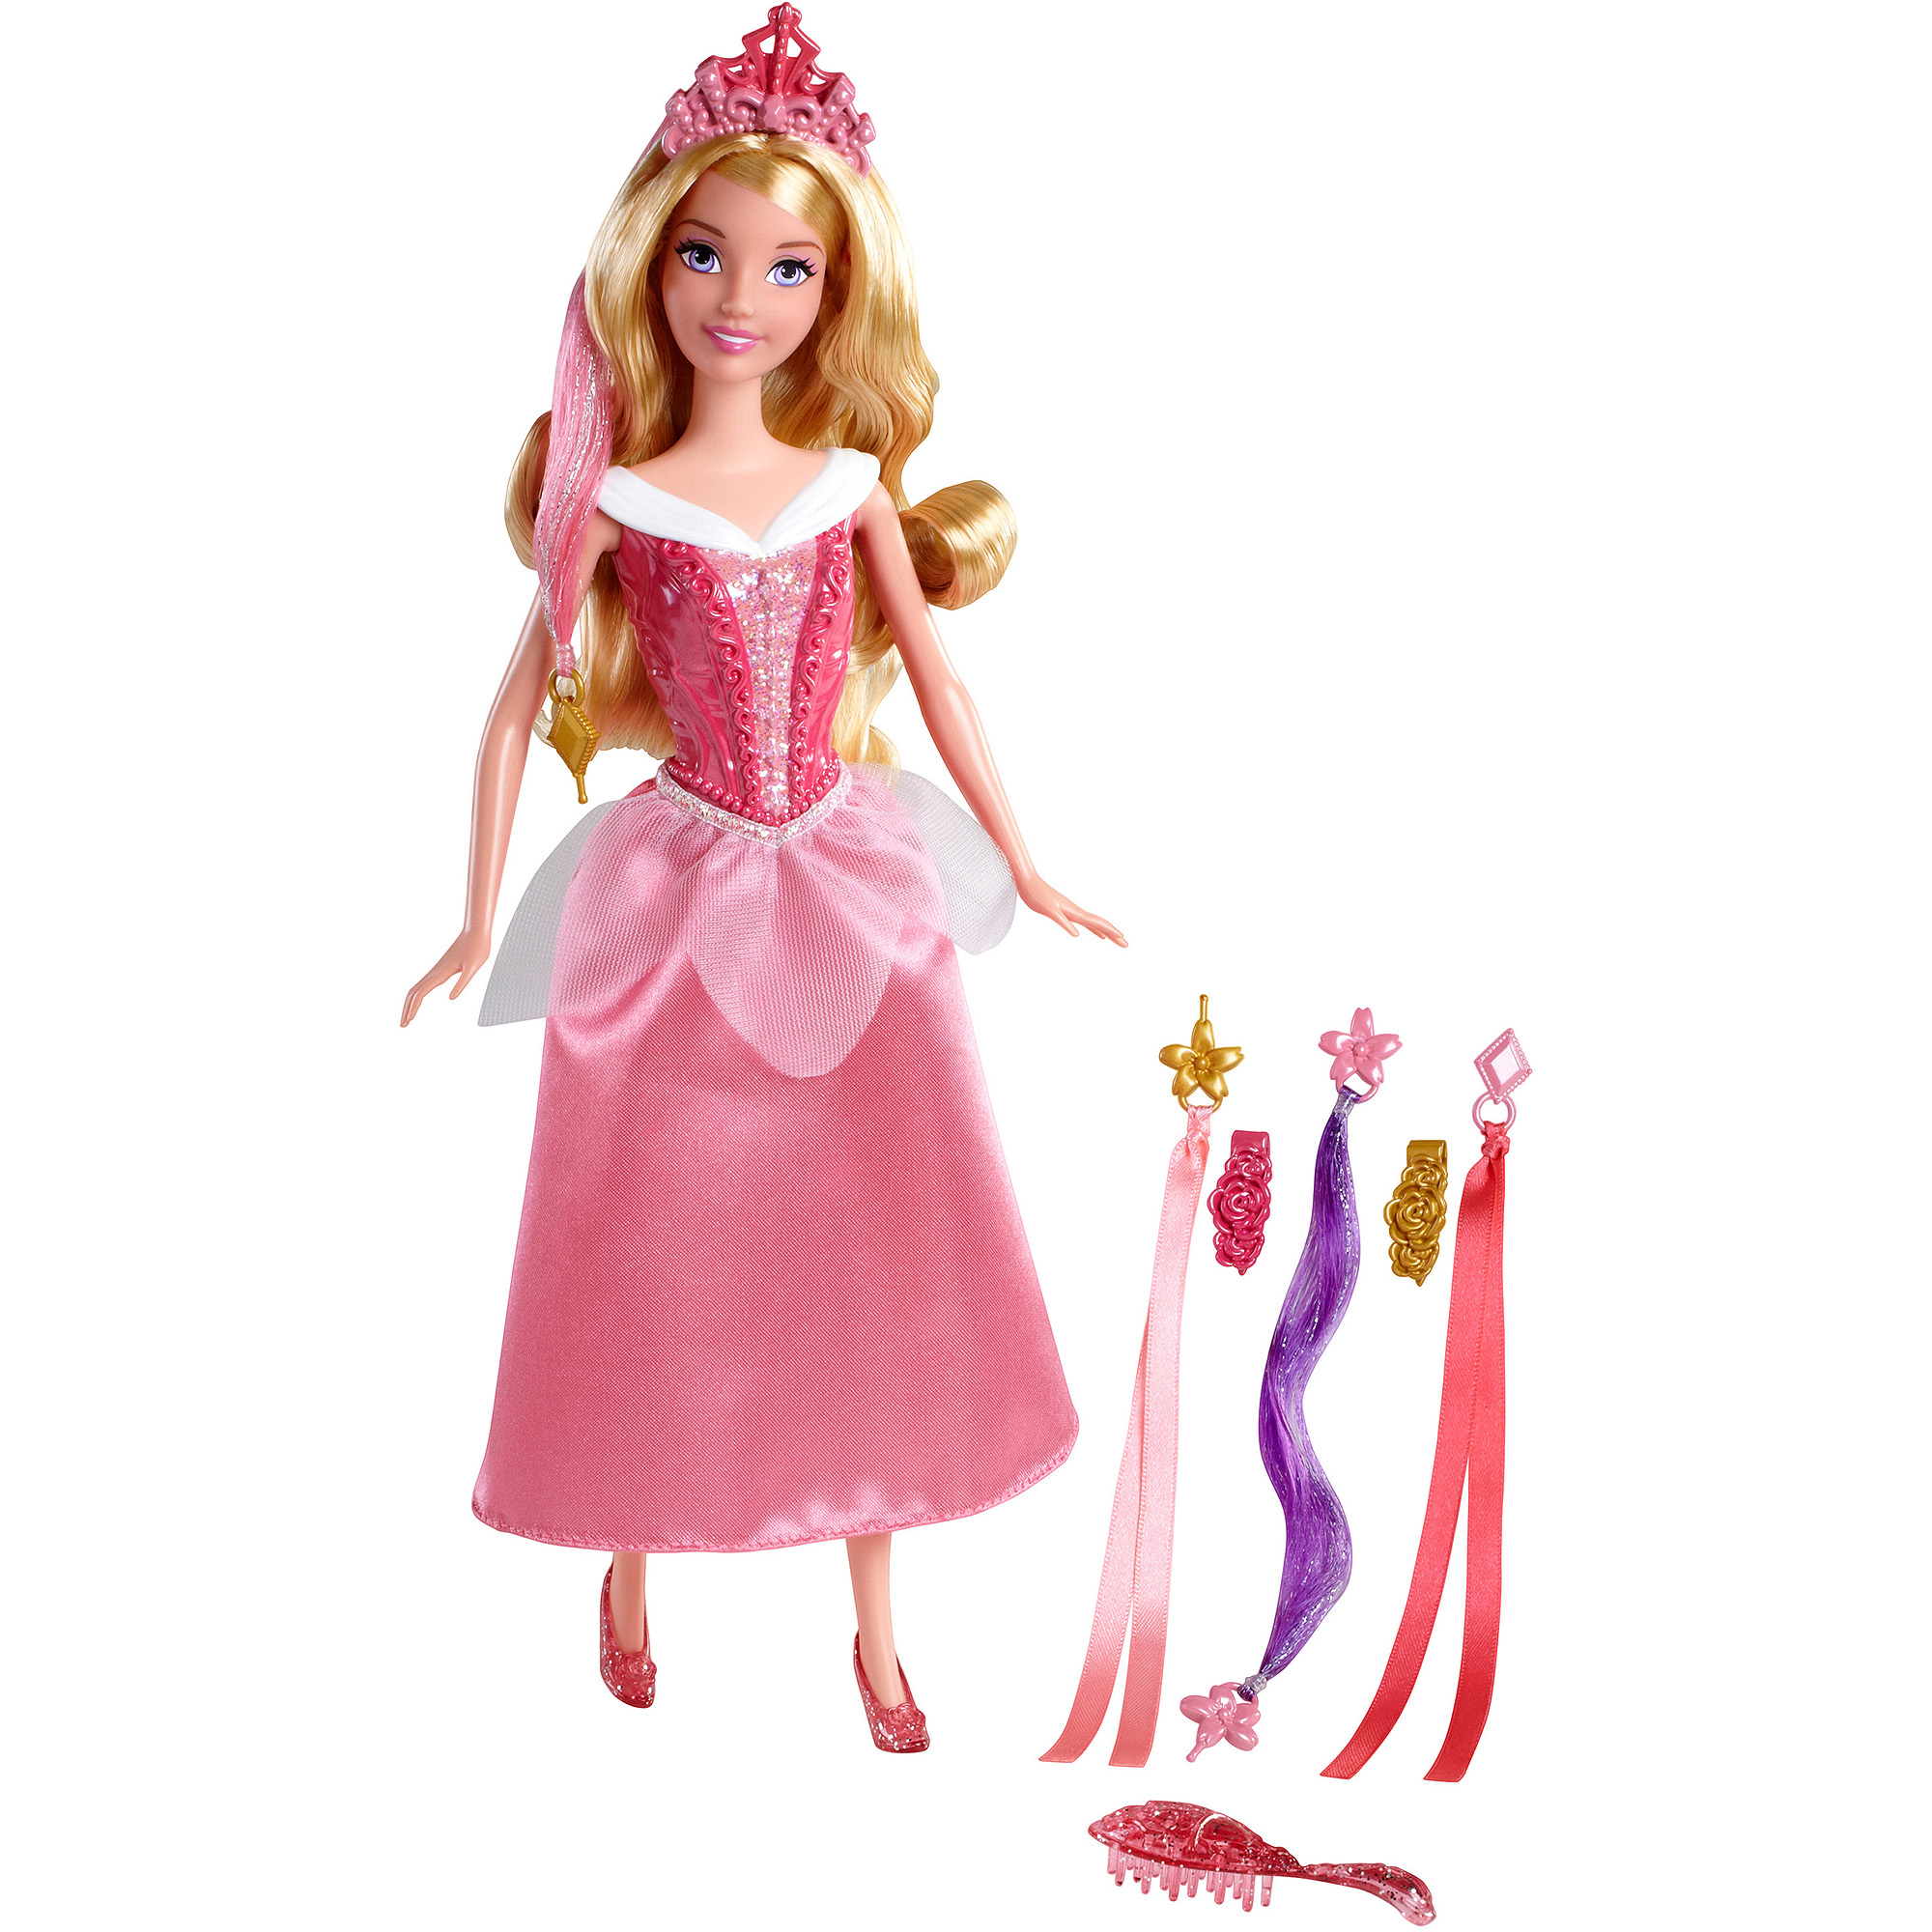 Disney Basic Hairplay Sleeping Beauty Doll by CHANG AN MATTEL TOYS 2ND FACTORY